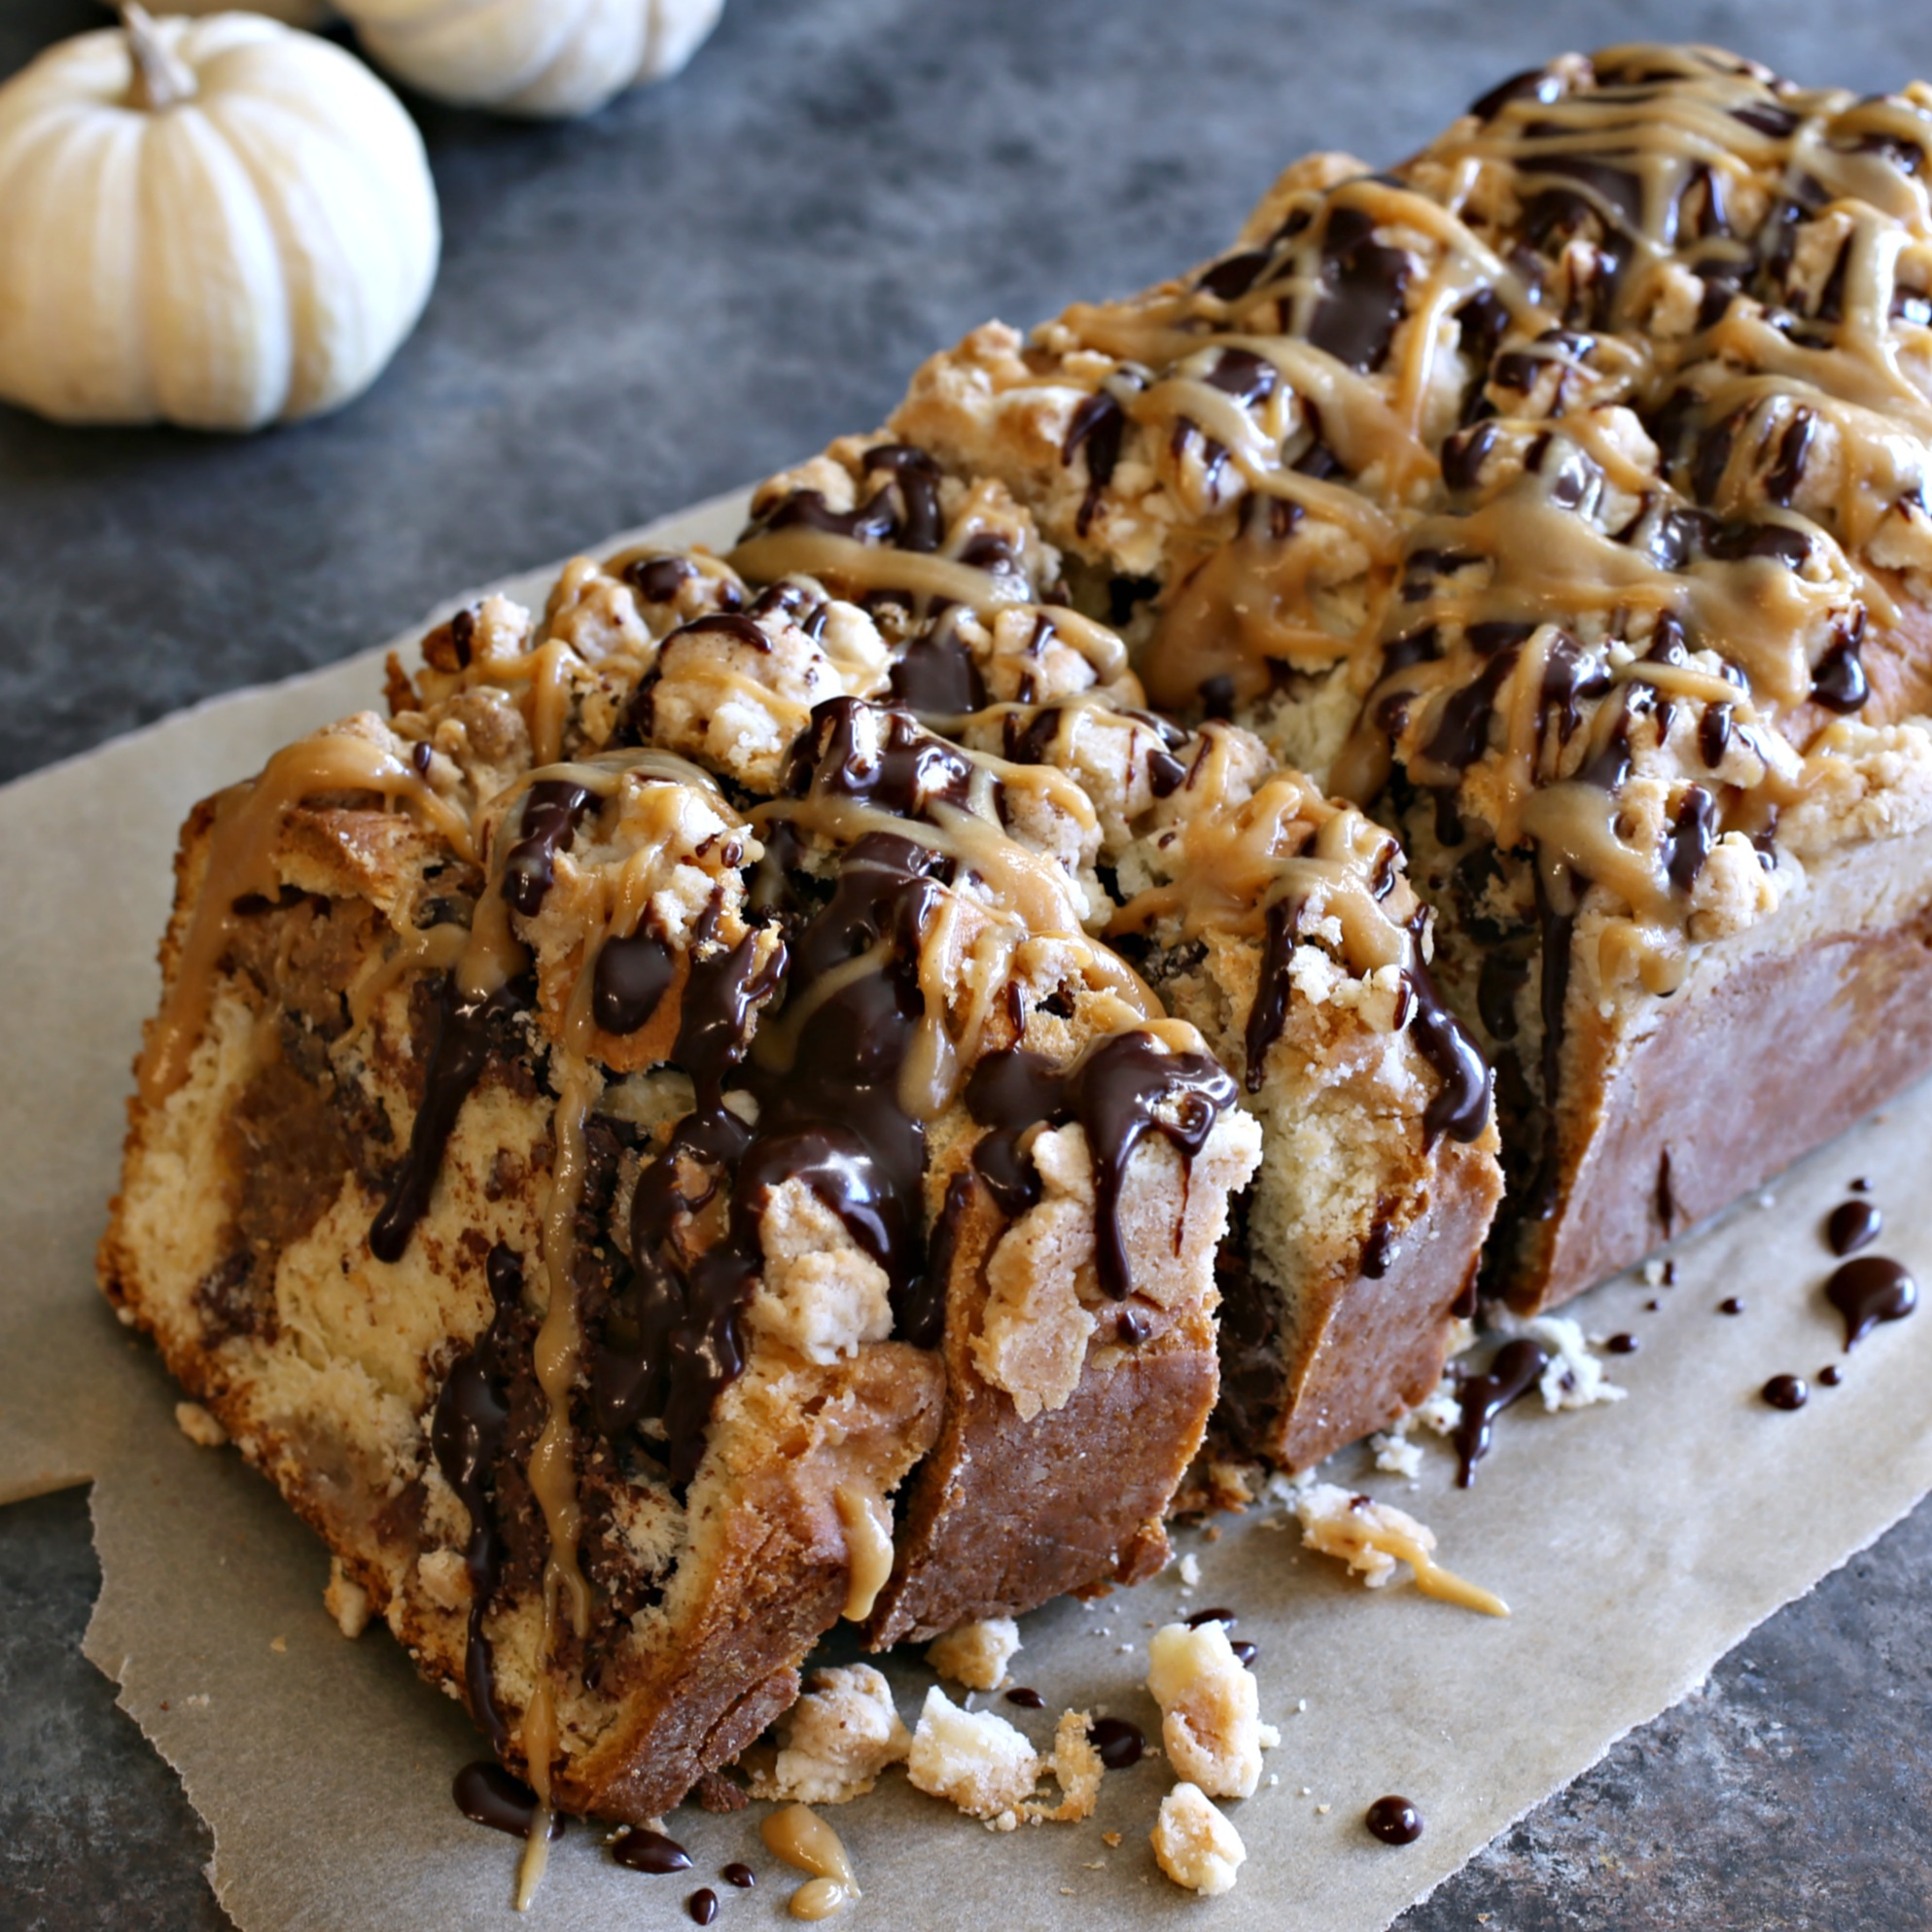 Recipe for a yeast cake with swirls of chocolate, peanut butter and a crumb topping.